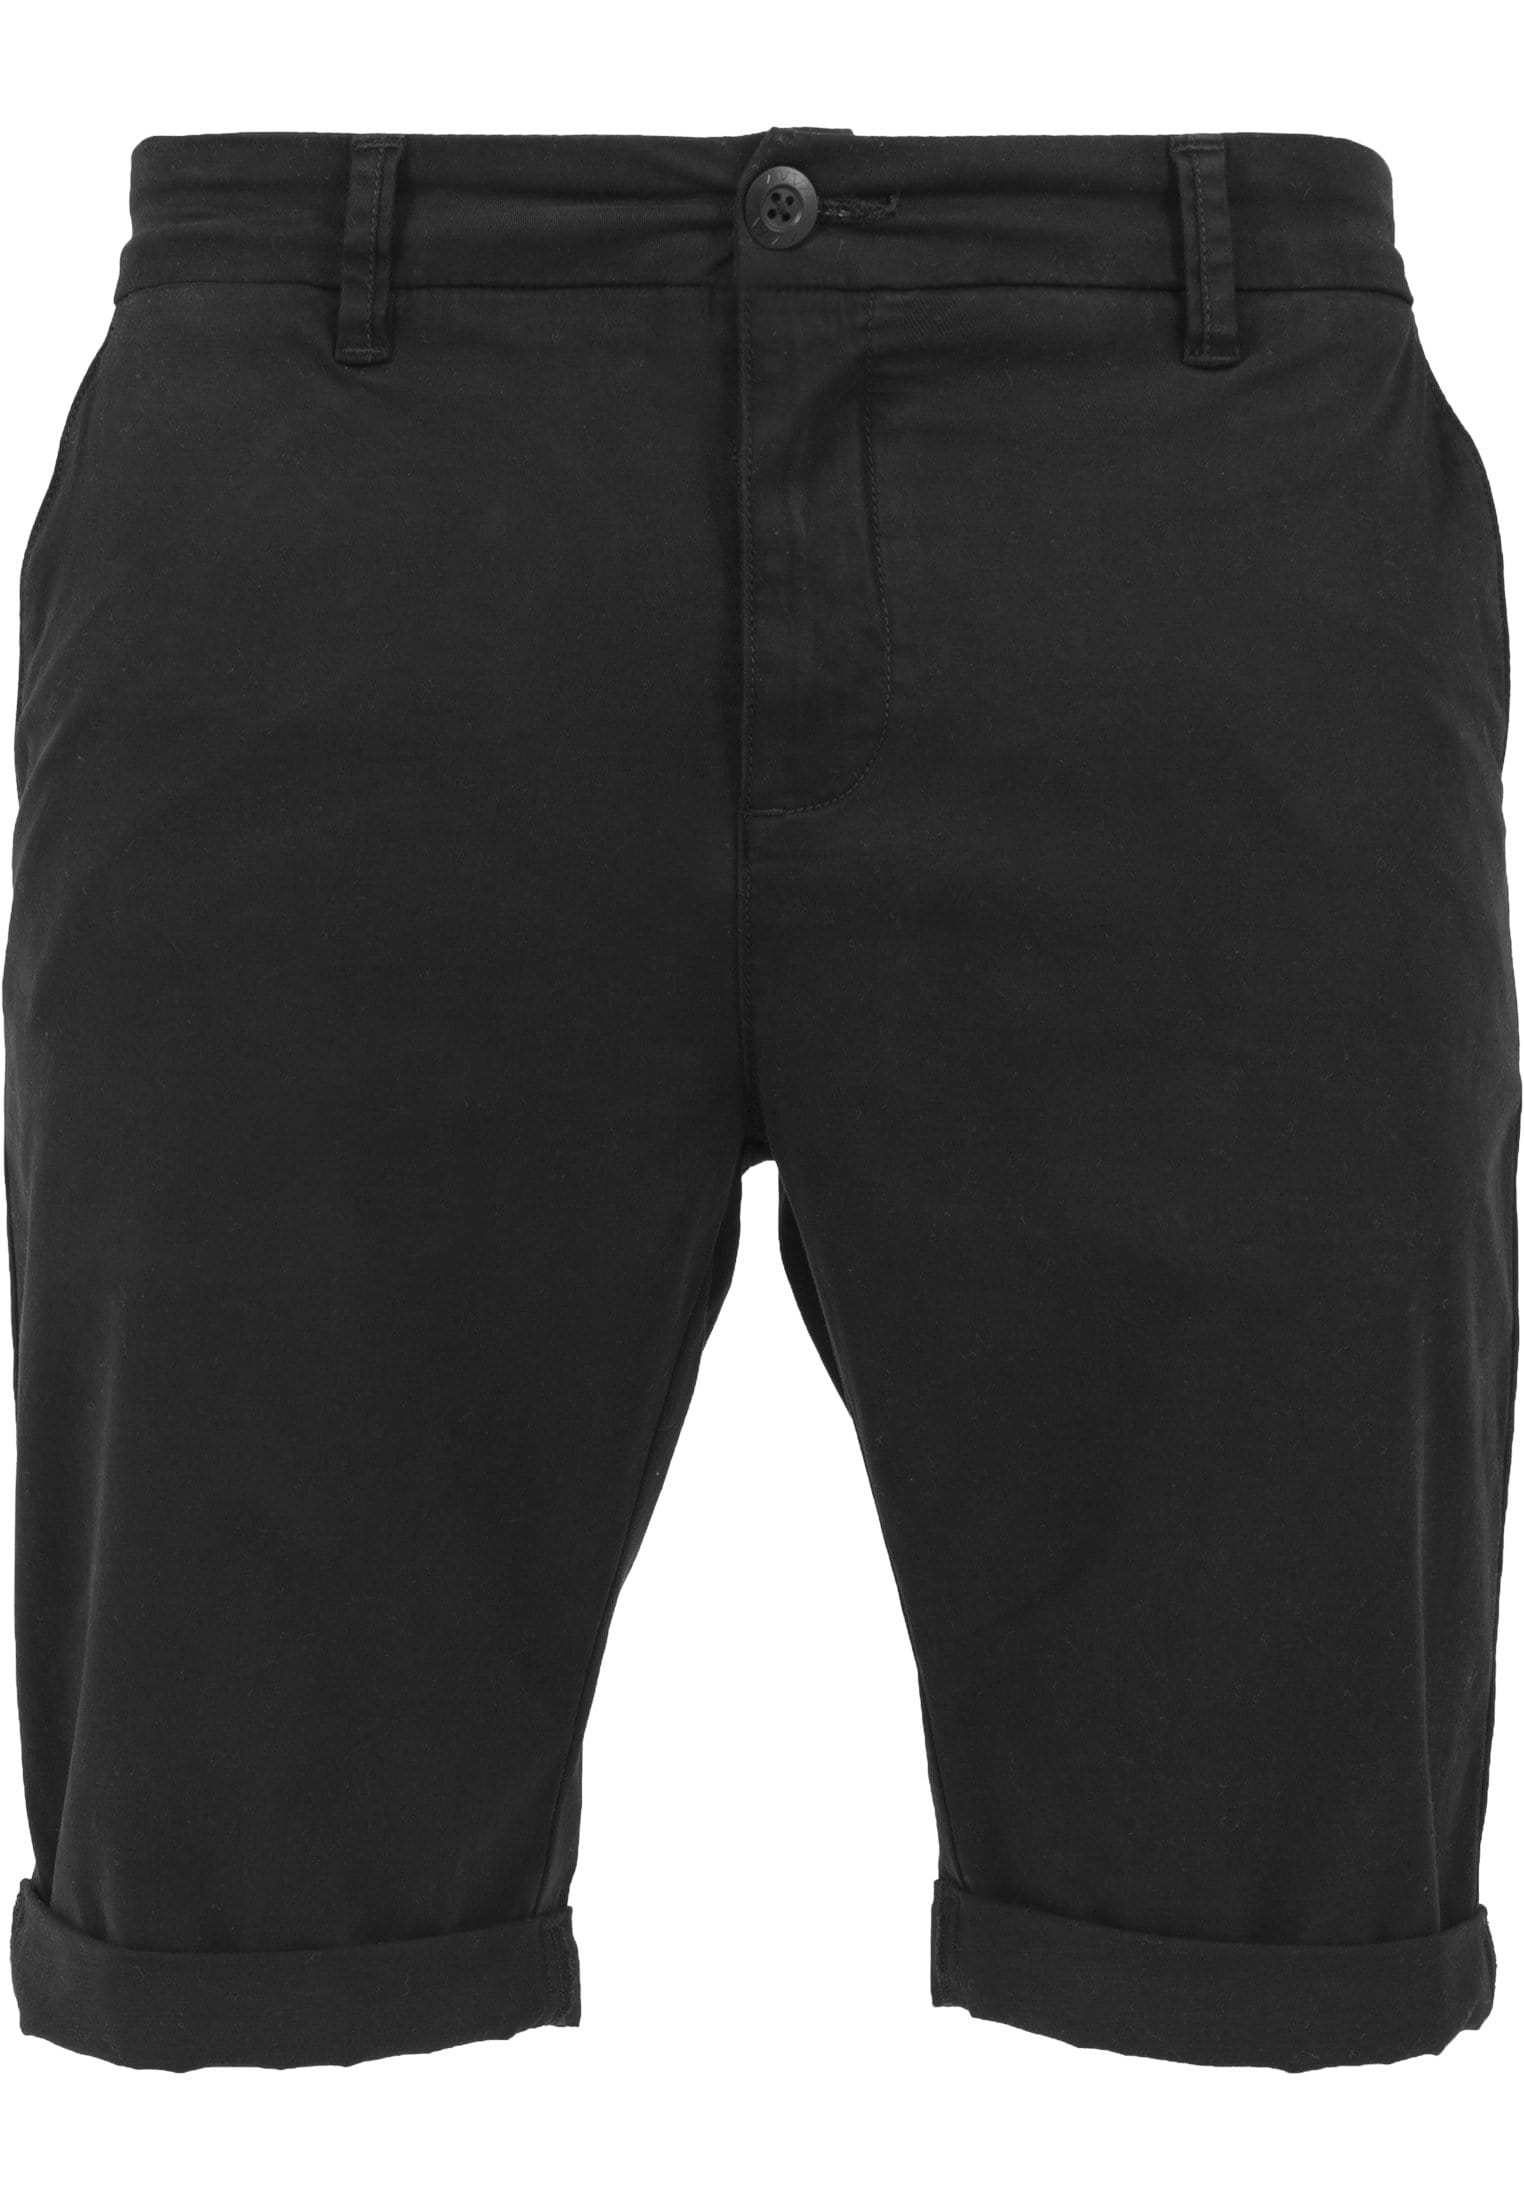 Image of   Stretch Turnup Chino Shorts - Black